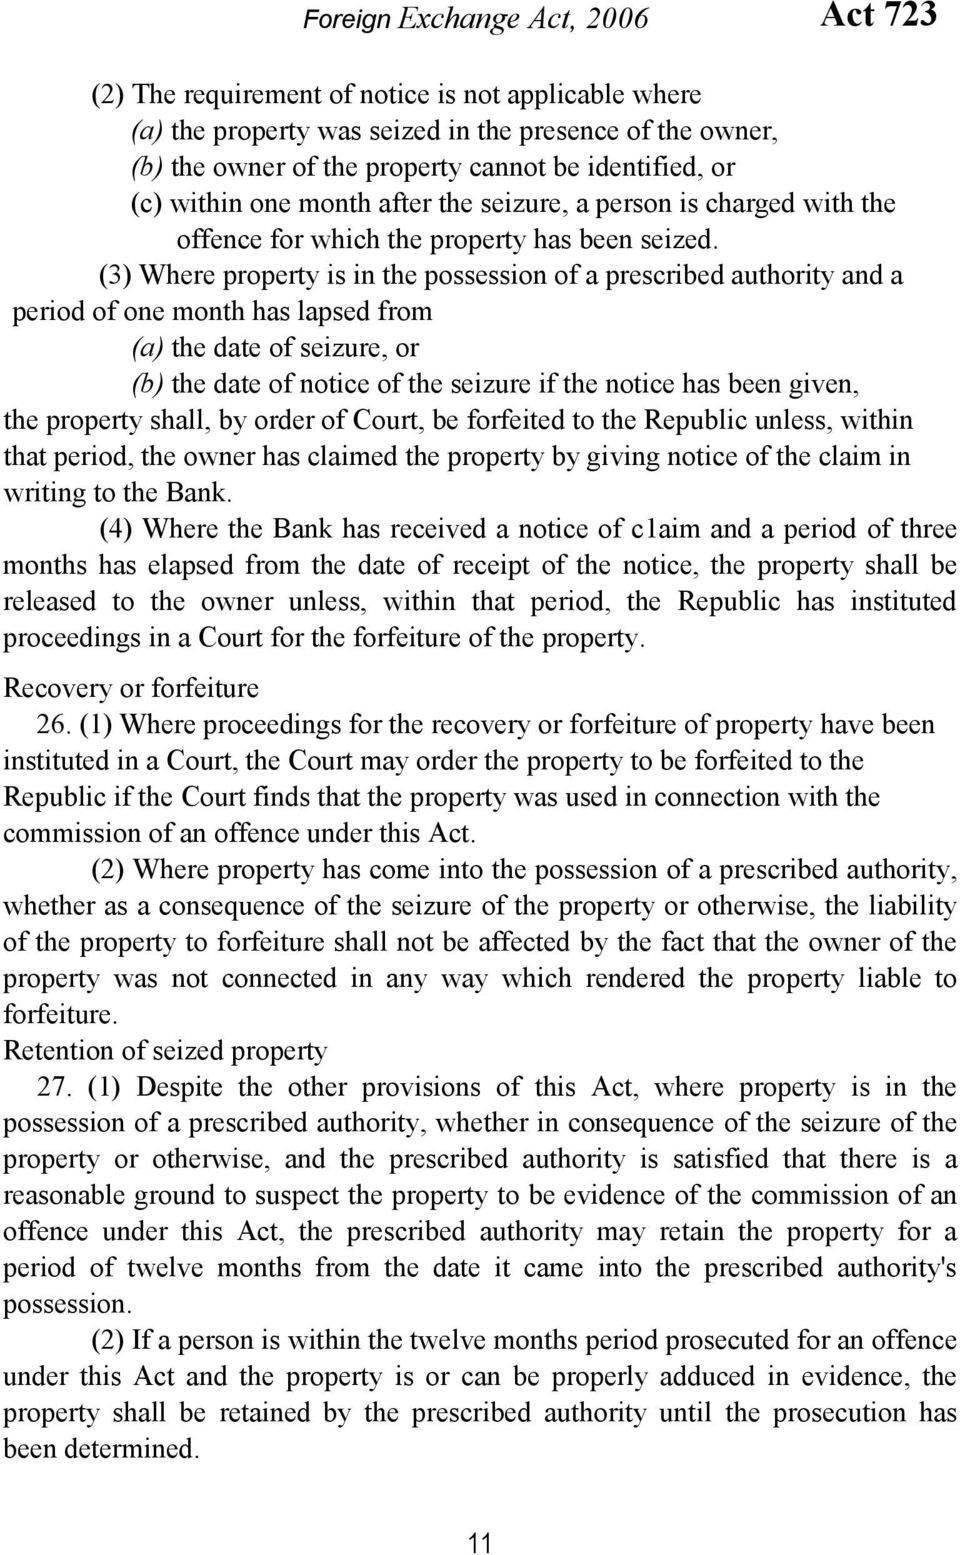 (3) Where property is in the possession of a prescribed authority and a period of one month has lapsed from (a) the date of seizure, or (b) the date of notice of the seizure if the notice has been